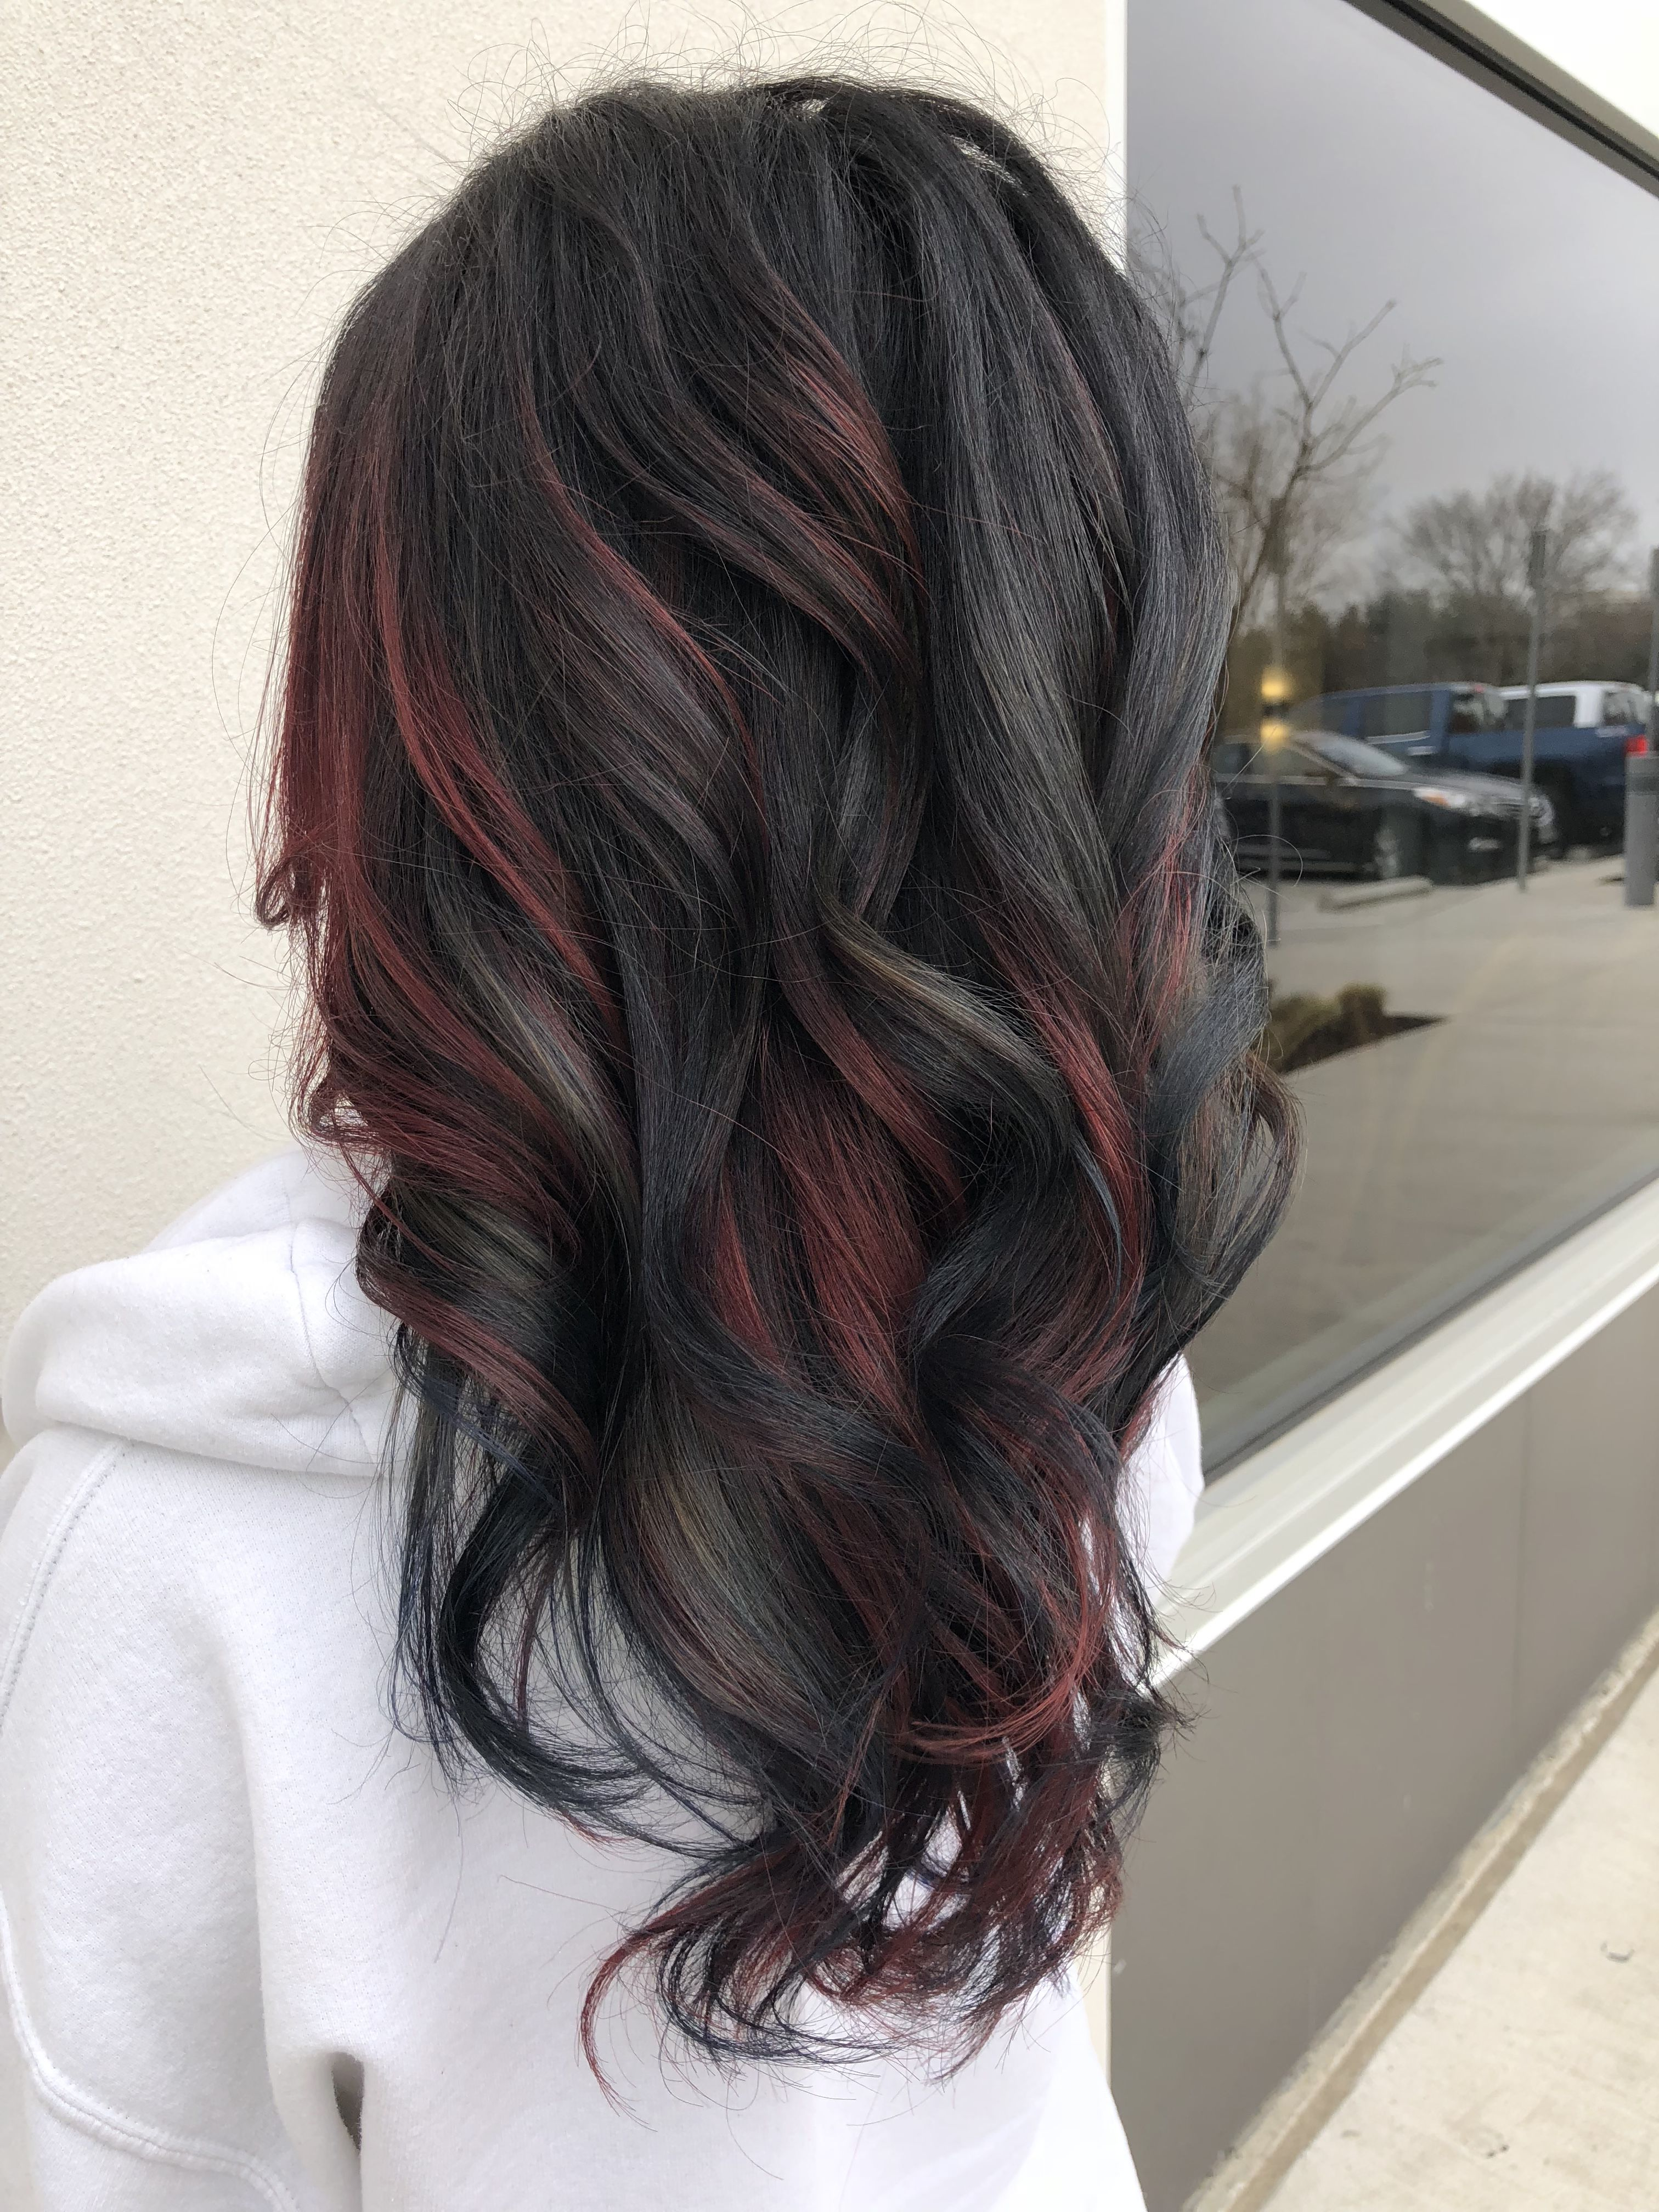 Blue And Red Color On Dark Brown Hair Black Hair With Red Highlights Black Red Hair Black Hair With Highlights